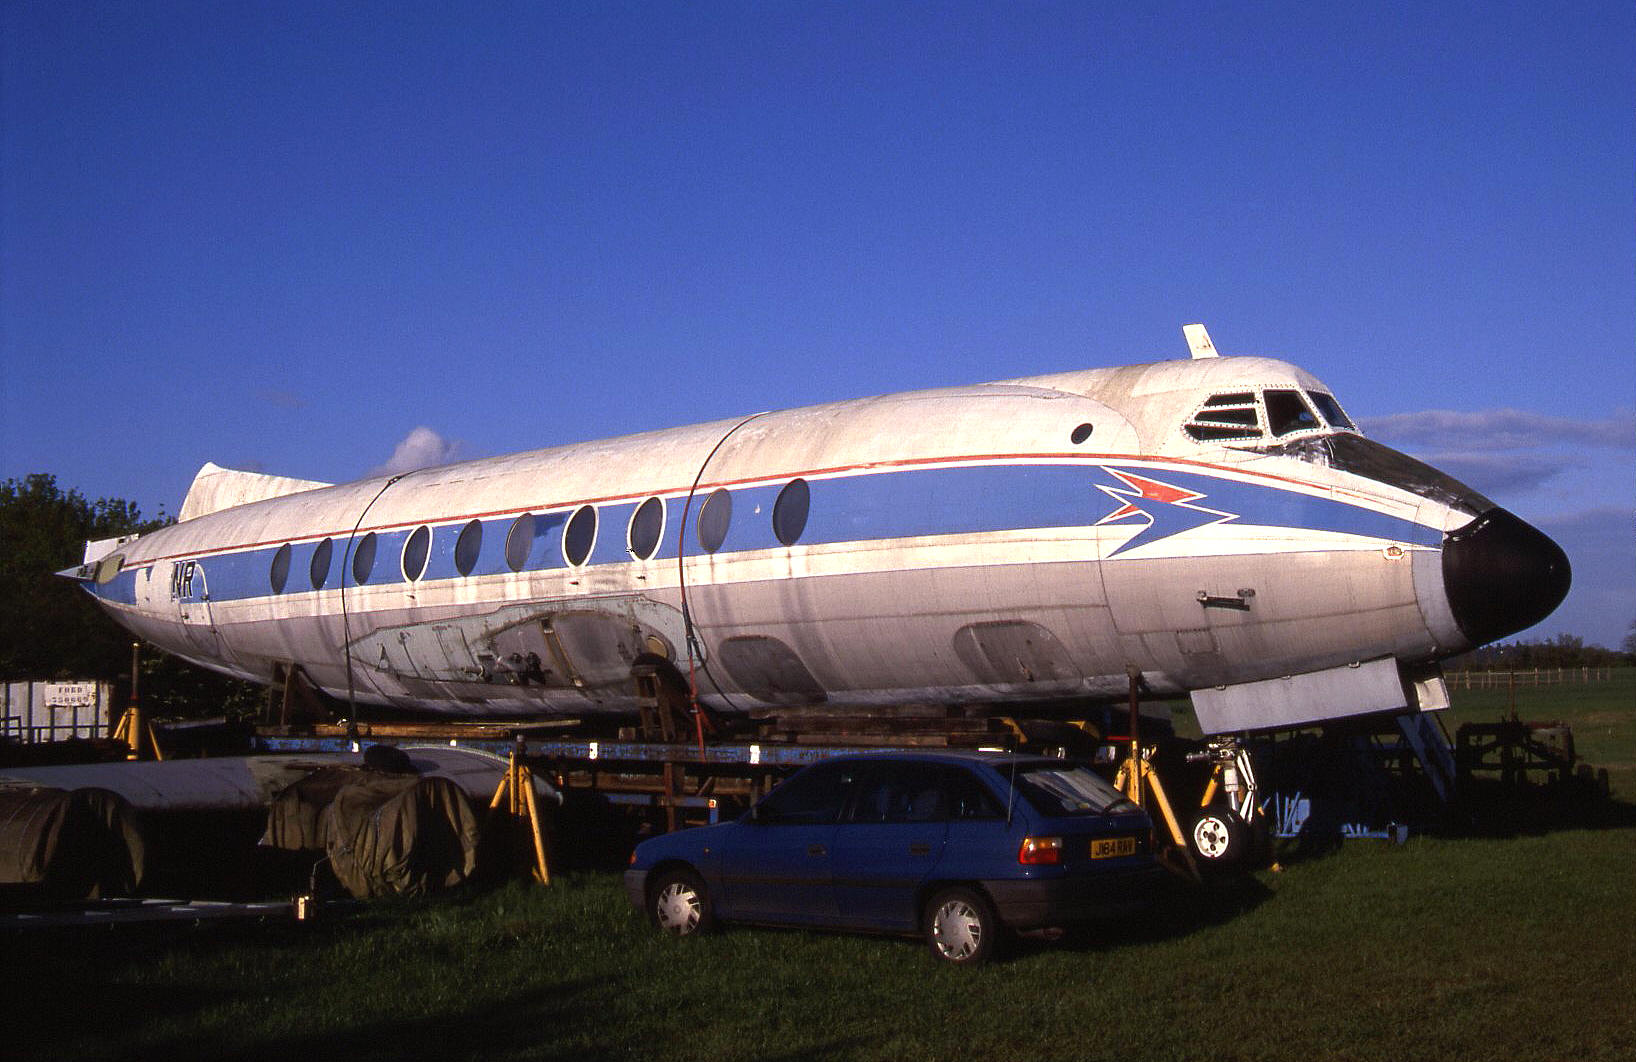 A 700 Series Viscount